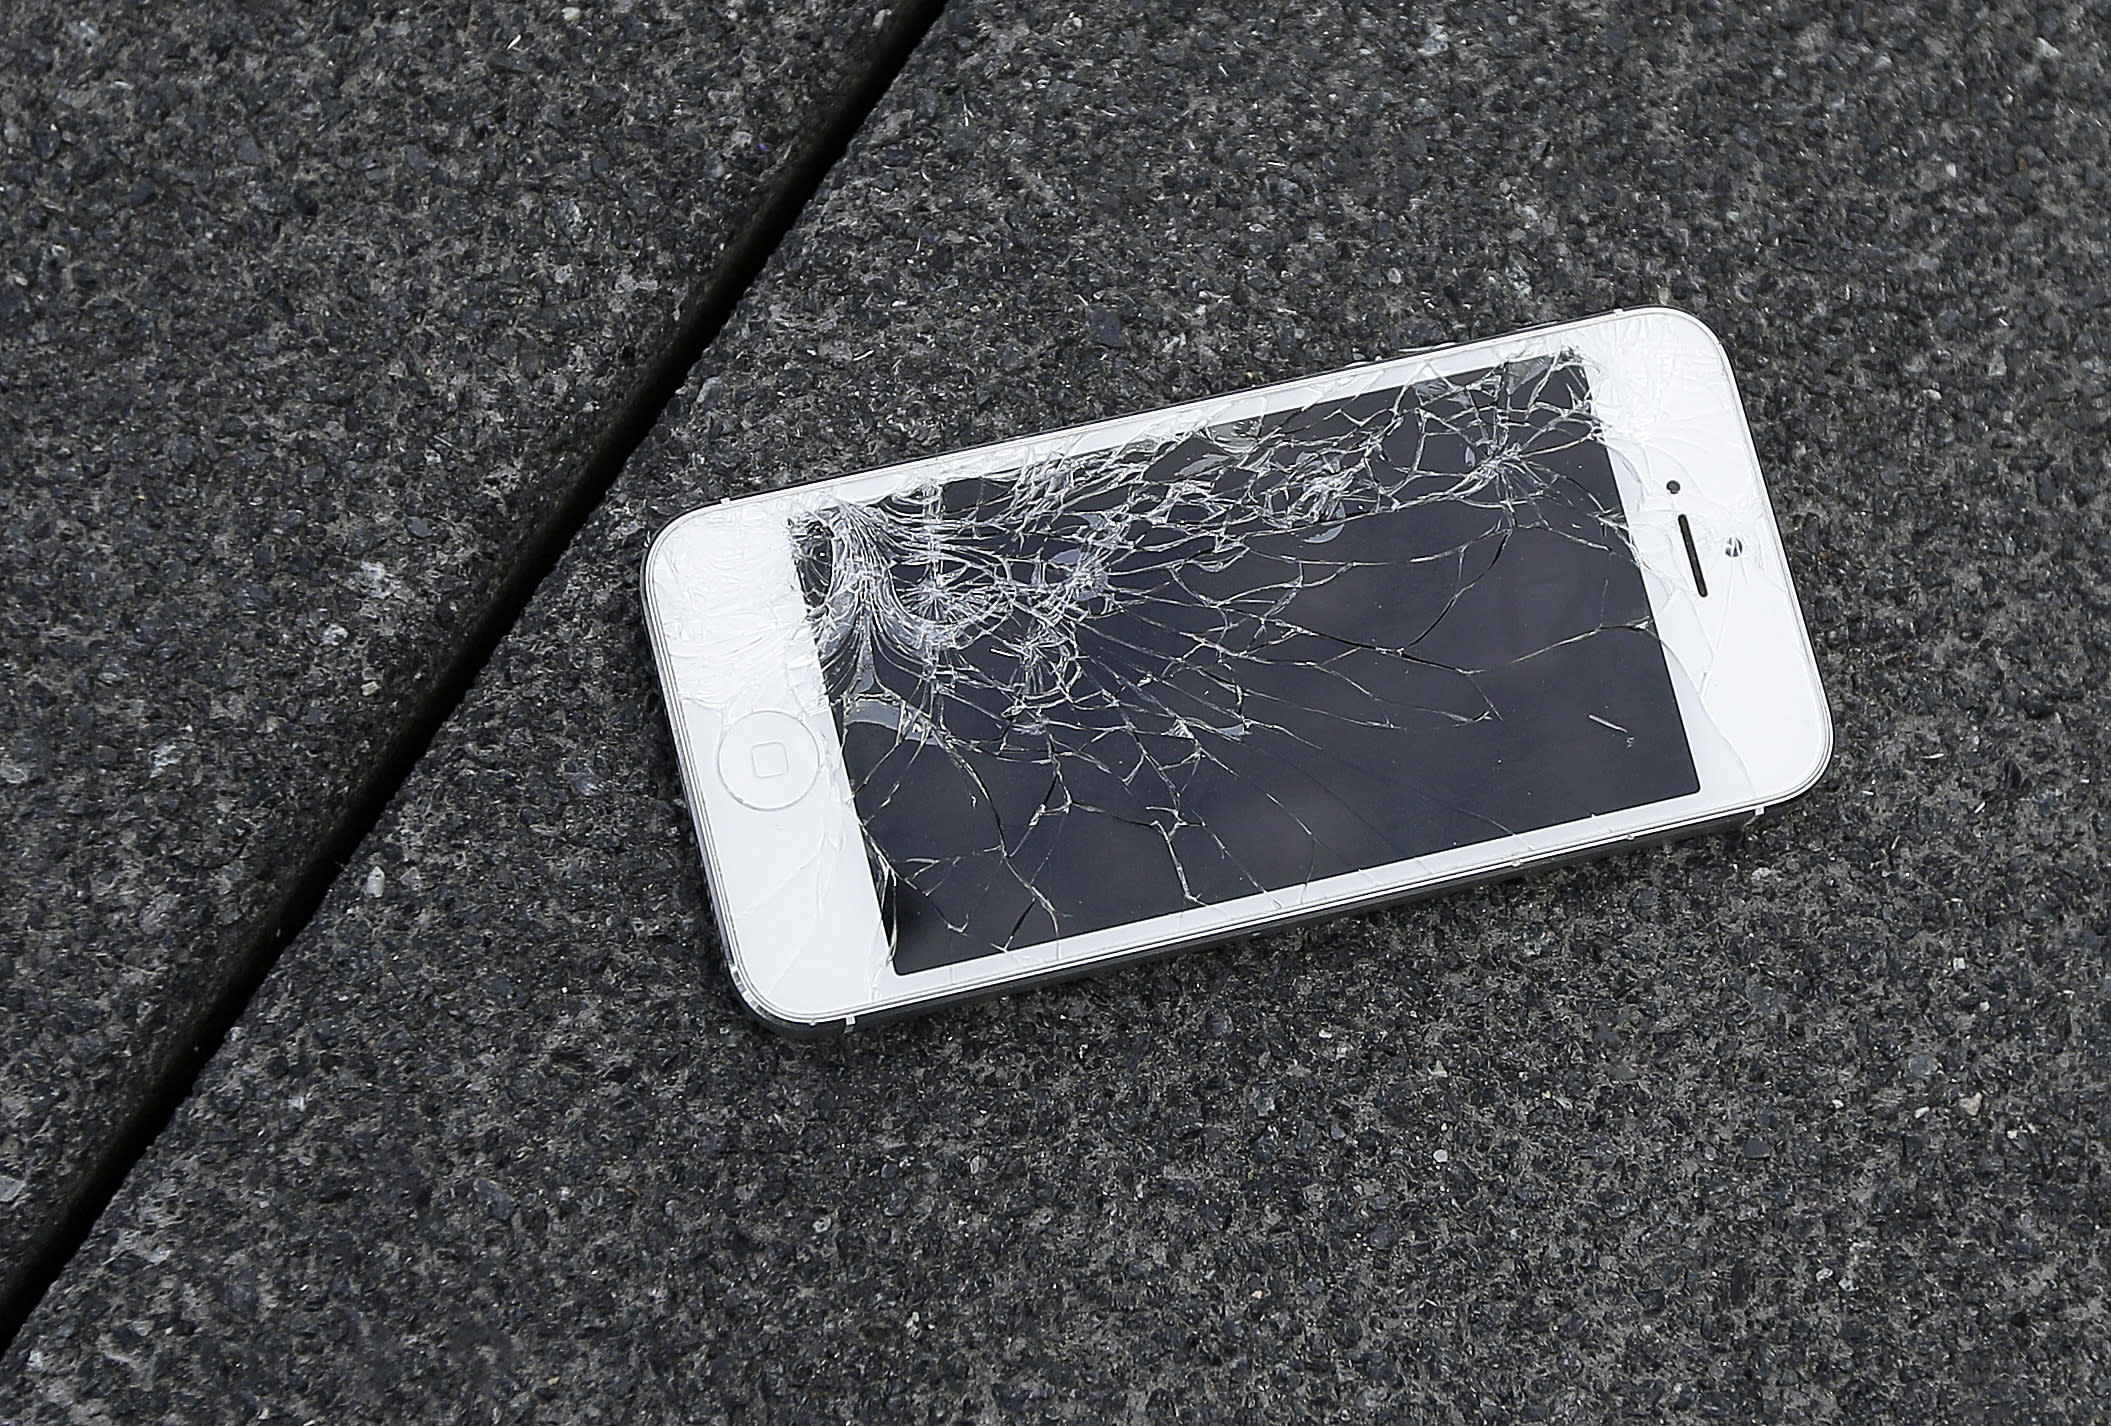 Cracked iPhone screen? You'll have more places to fix it